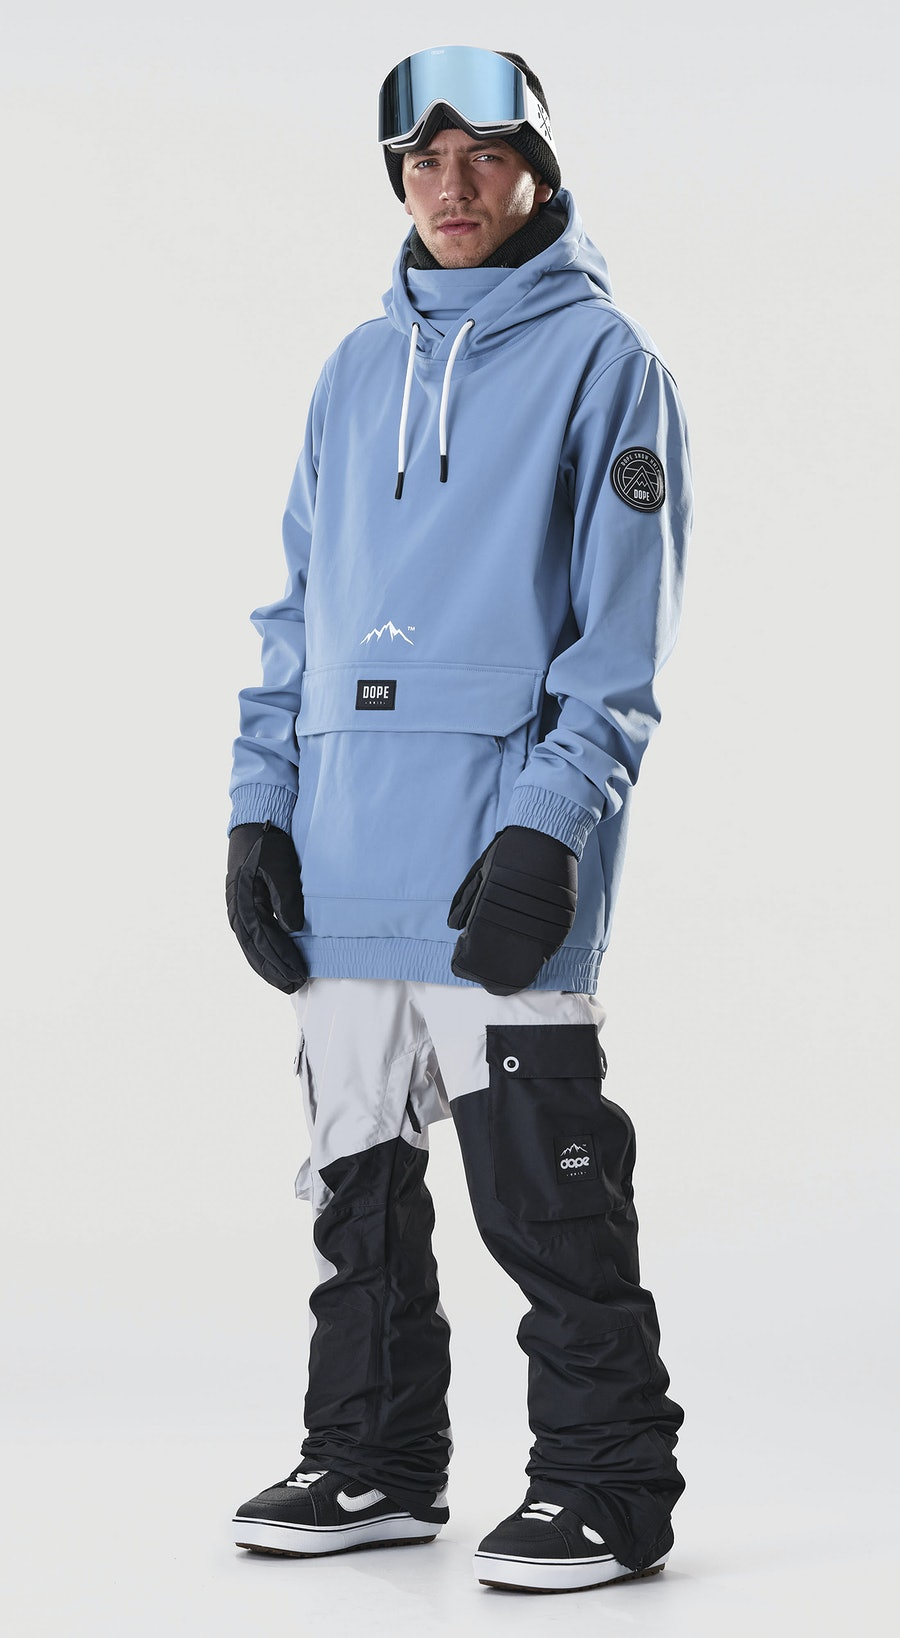 Dope Wylie Patch Blue Steel Snowboardkläder Multi